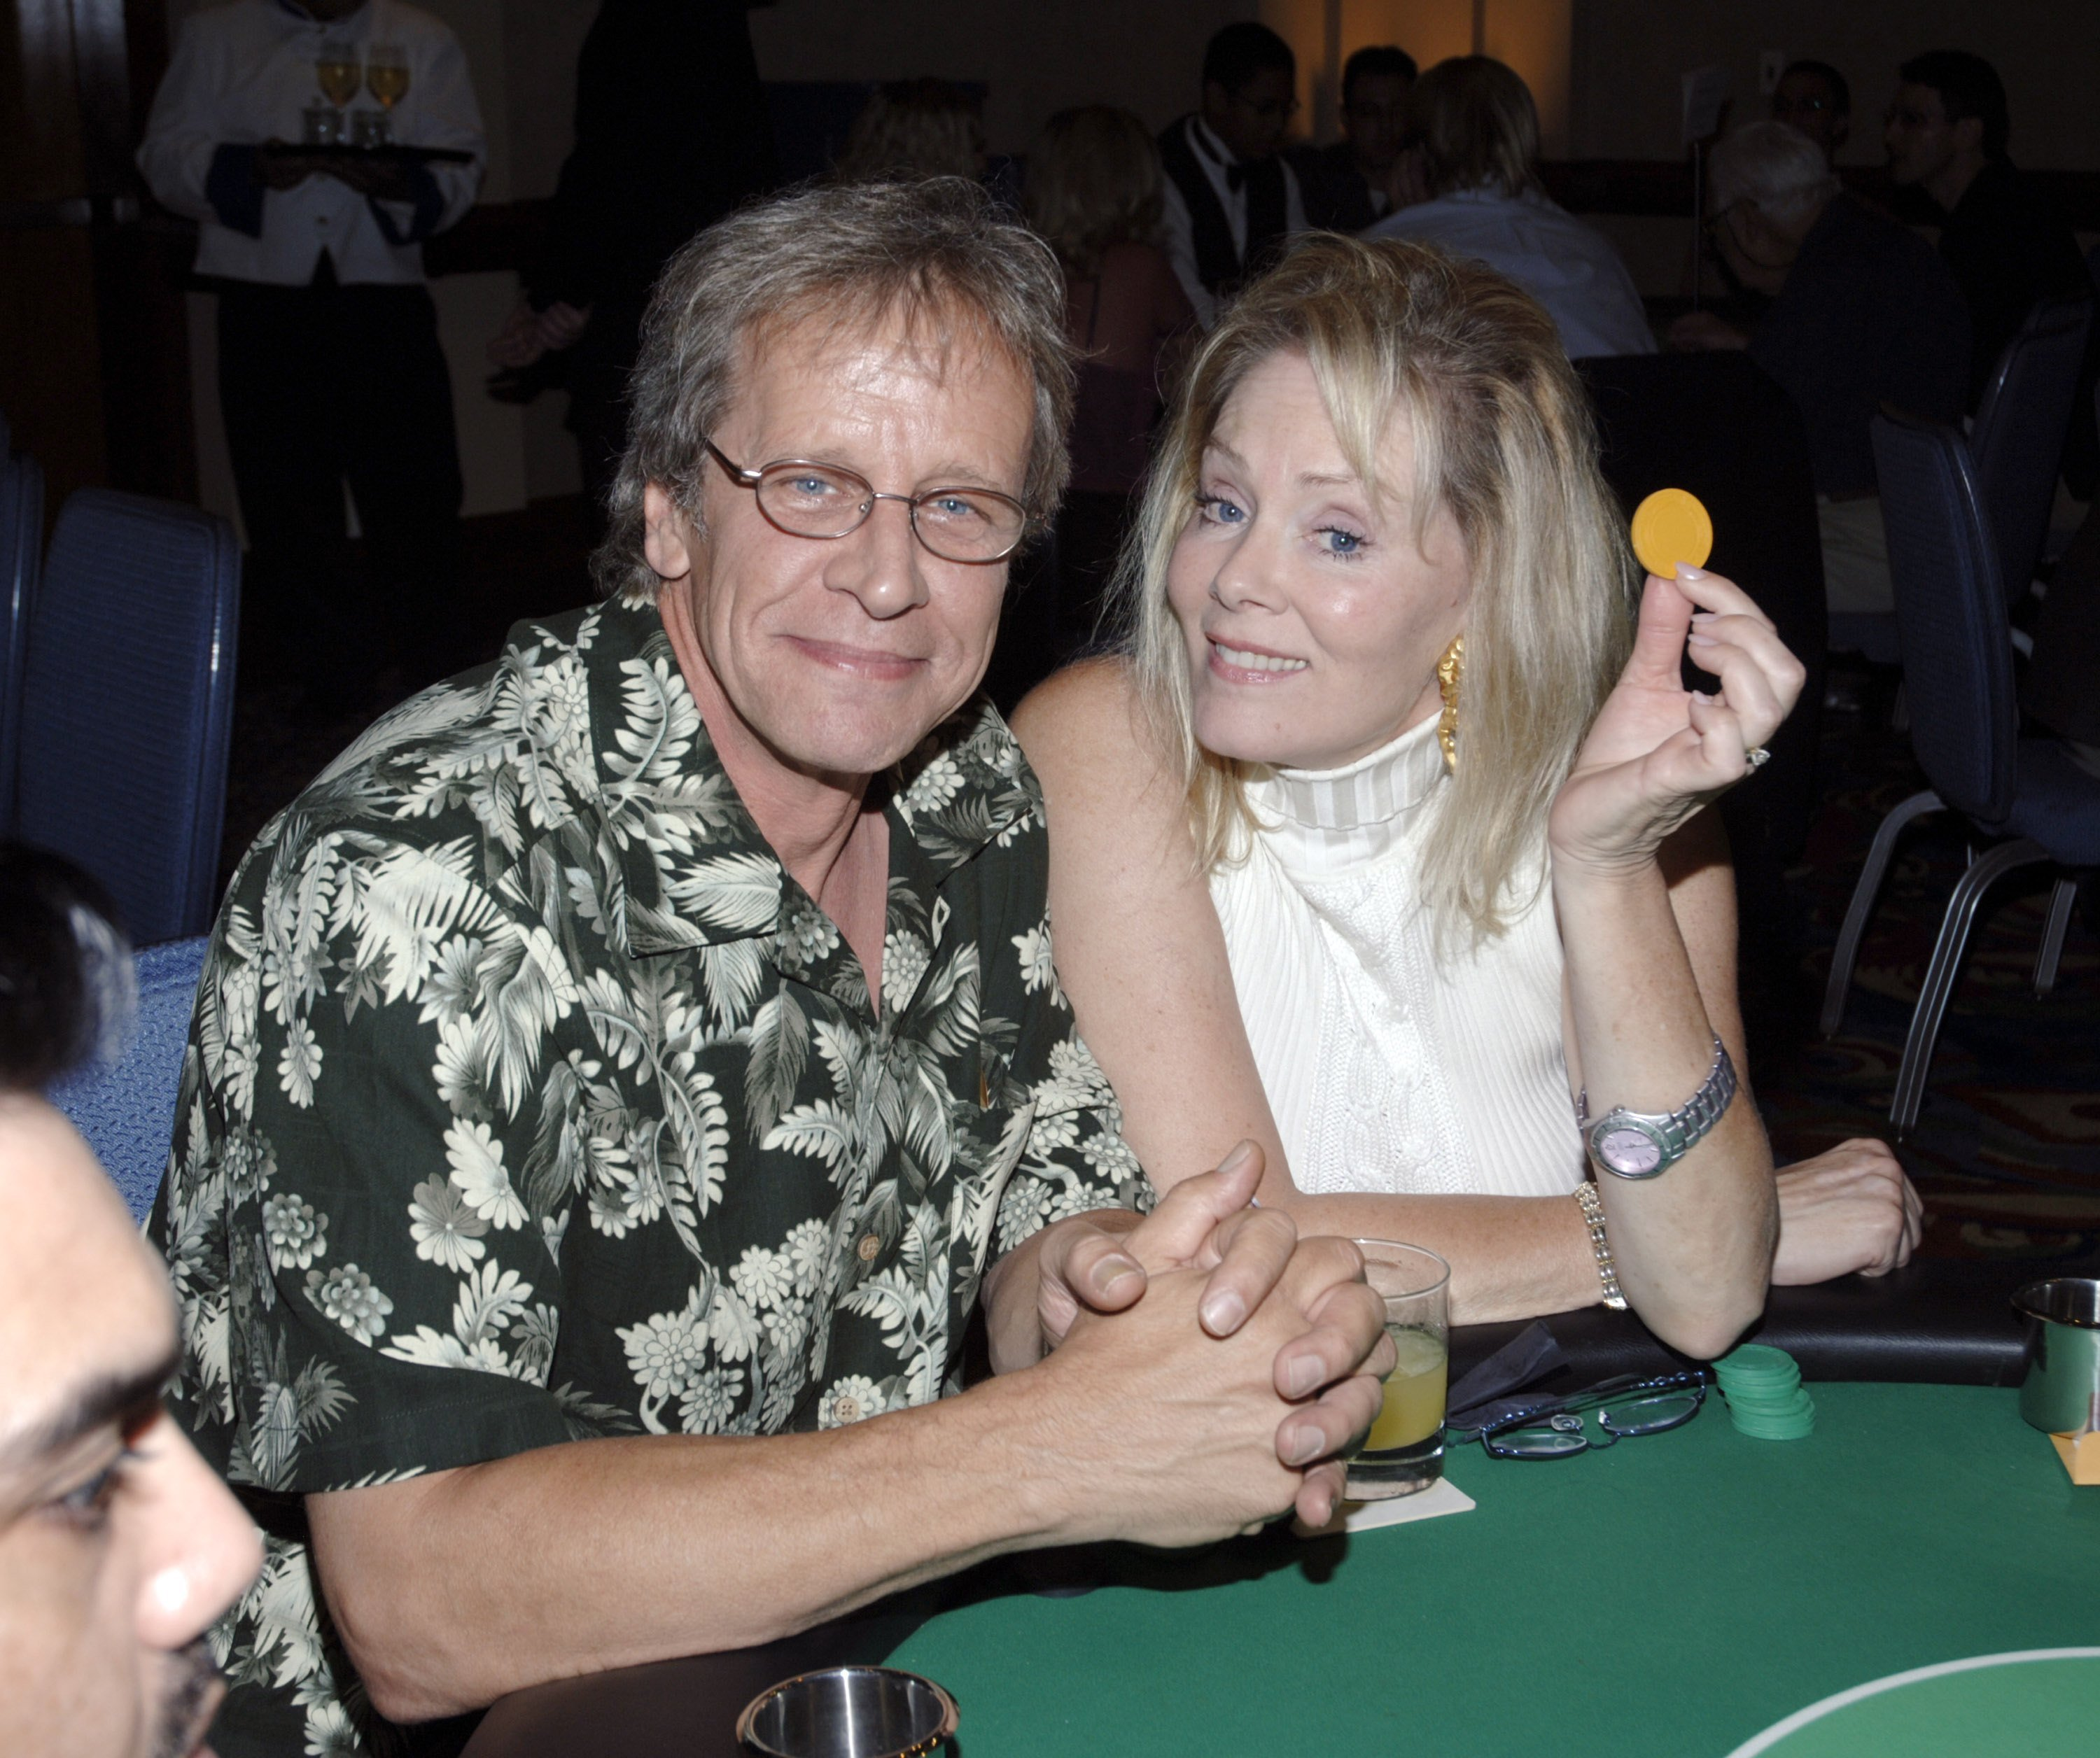 Richard Gilliland and Jean Smart attend the Texas Hold'Em Casino Night Fundraiser for the Caucus Foundation on August 19, 2006. | Source: Getty Images